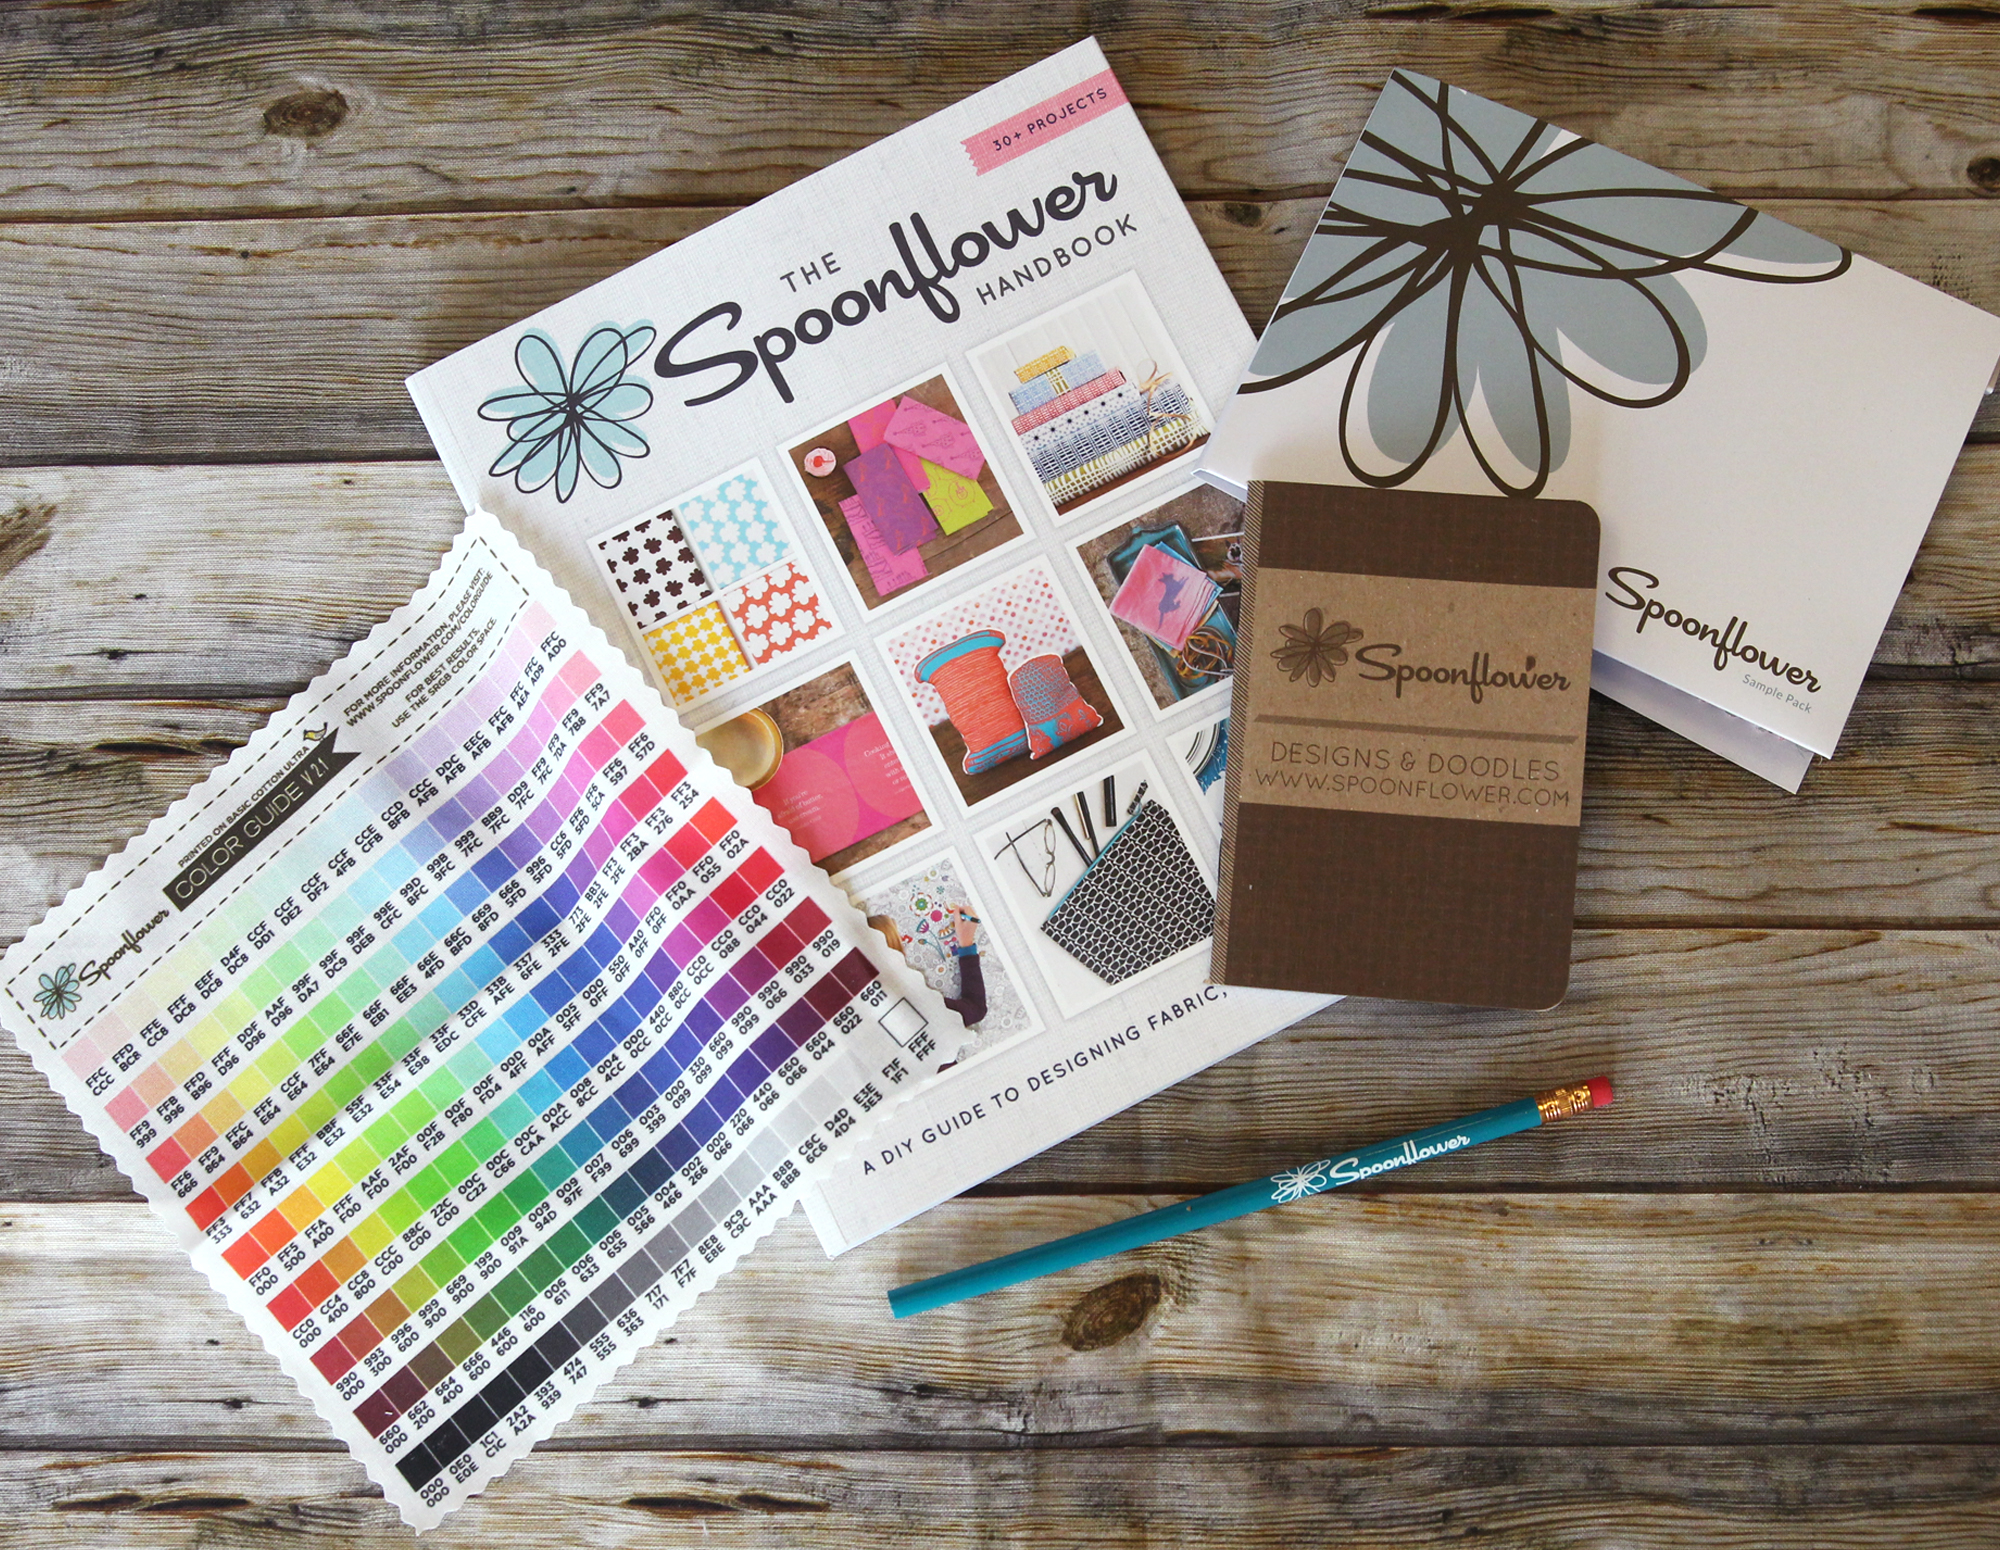 Win a Spoonflower Welcome Pack - The Ultimate Craft Day Giveaway | Spoonflower Blog